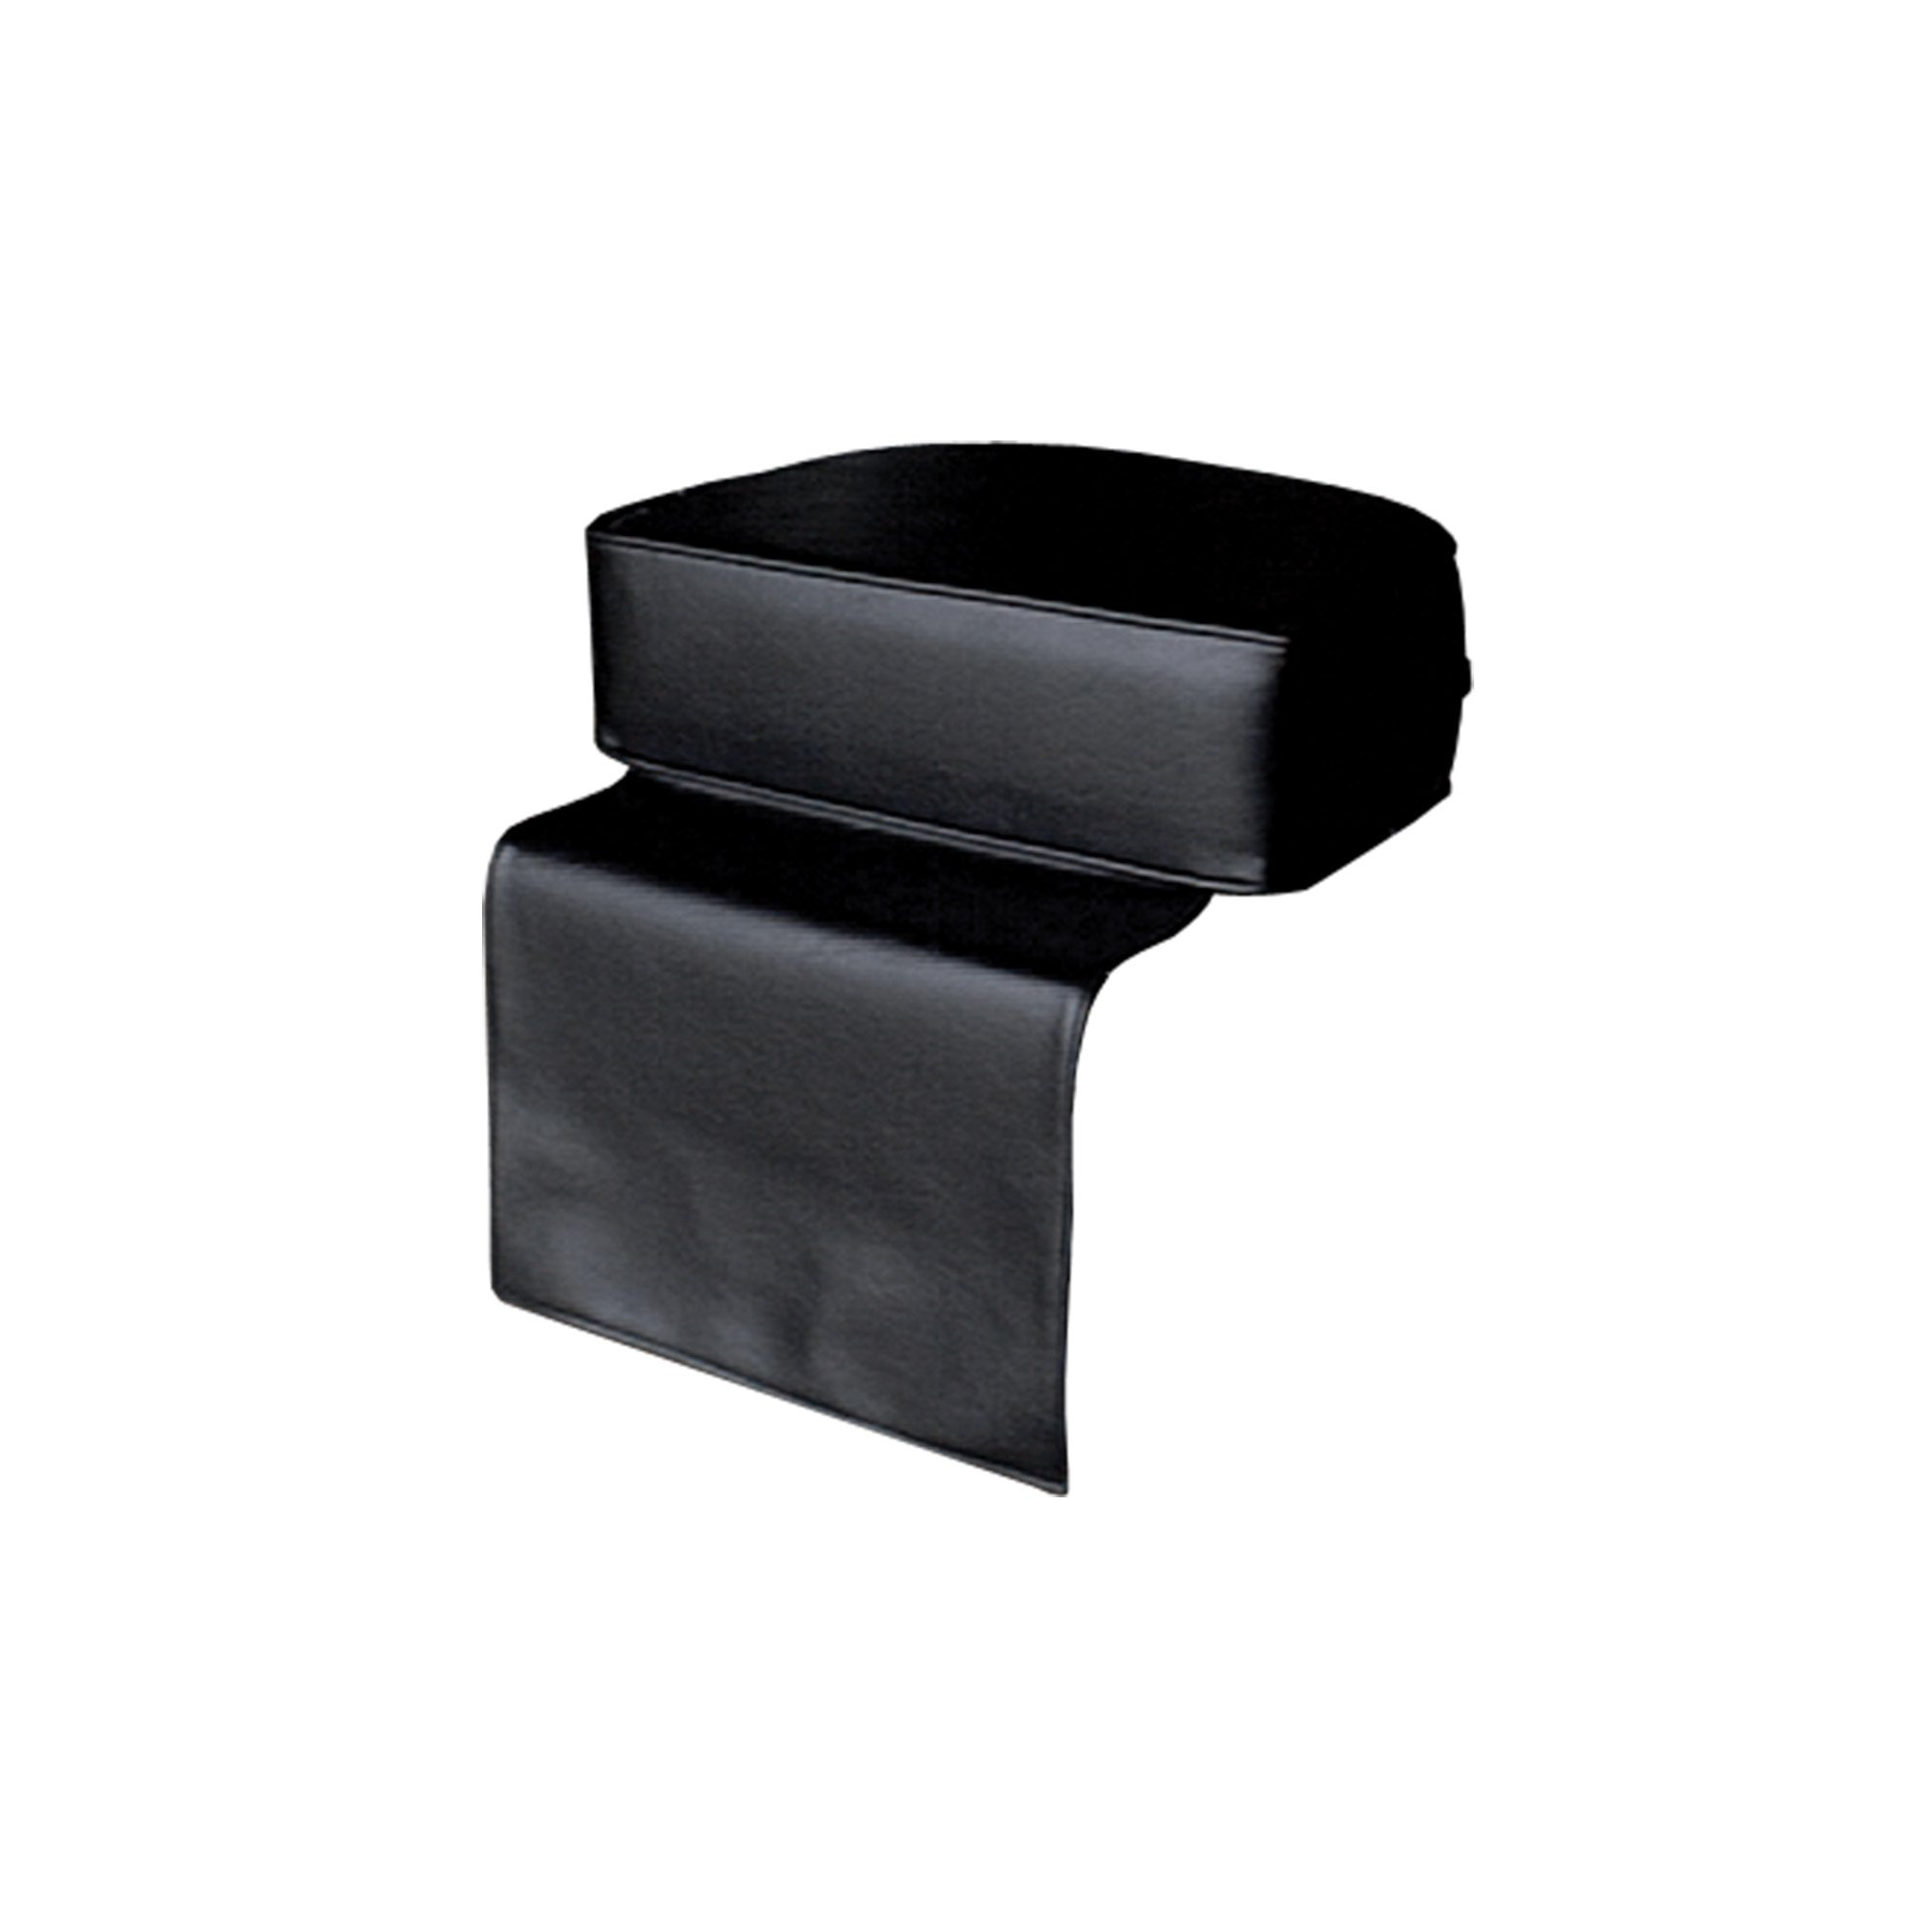 150 Booster Seat with Protective Skirt